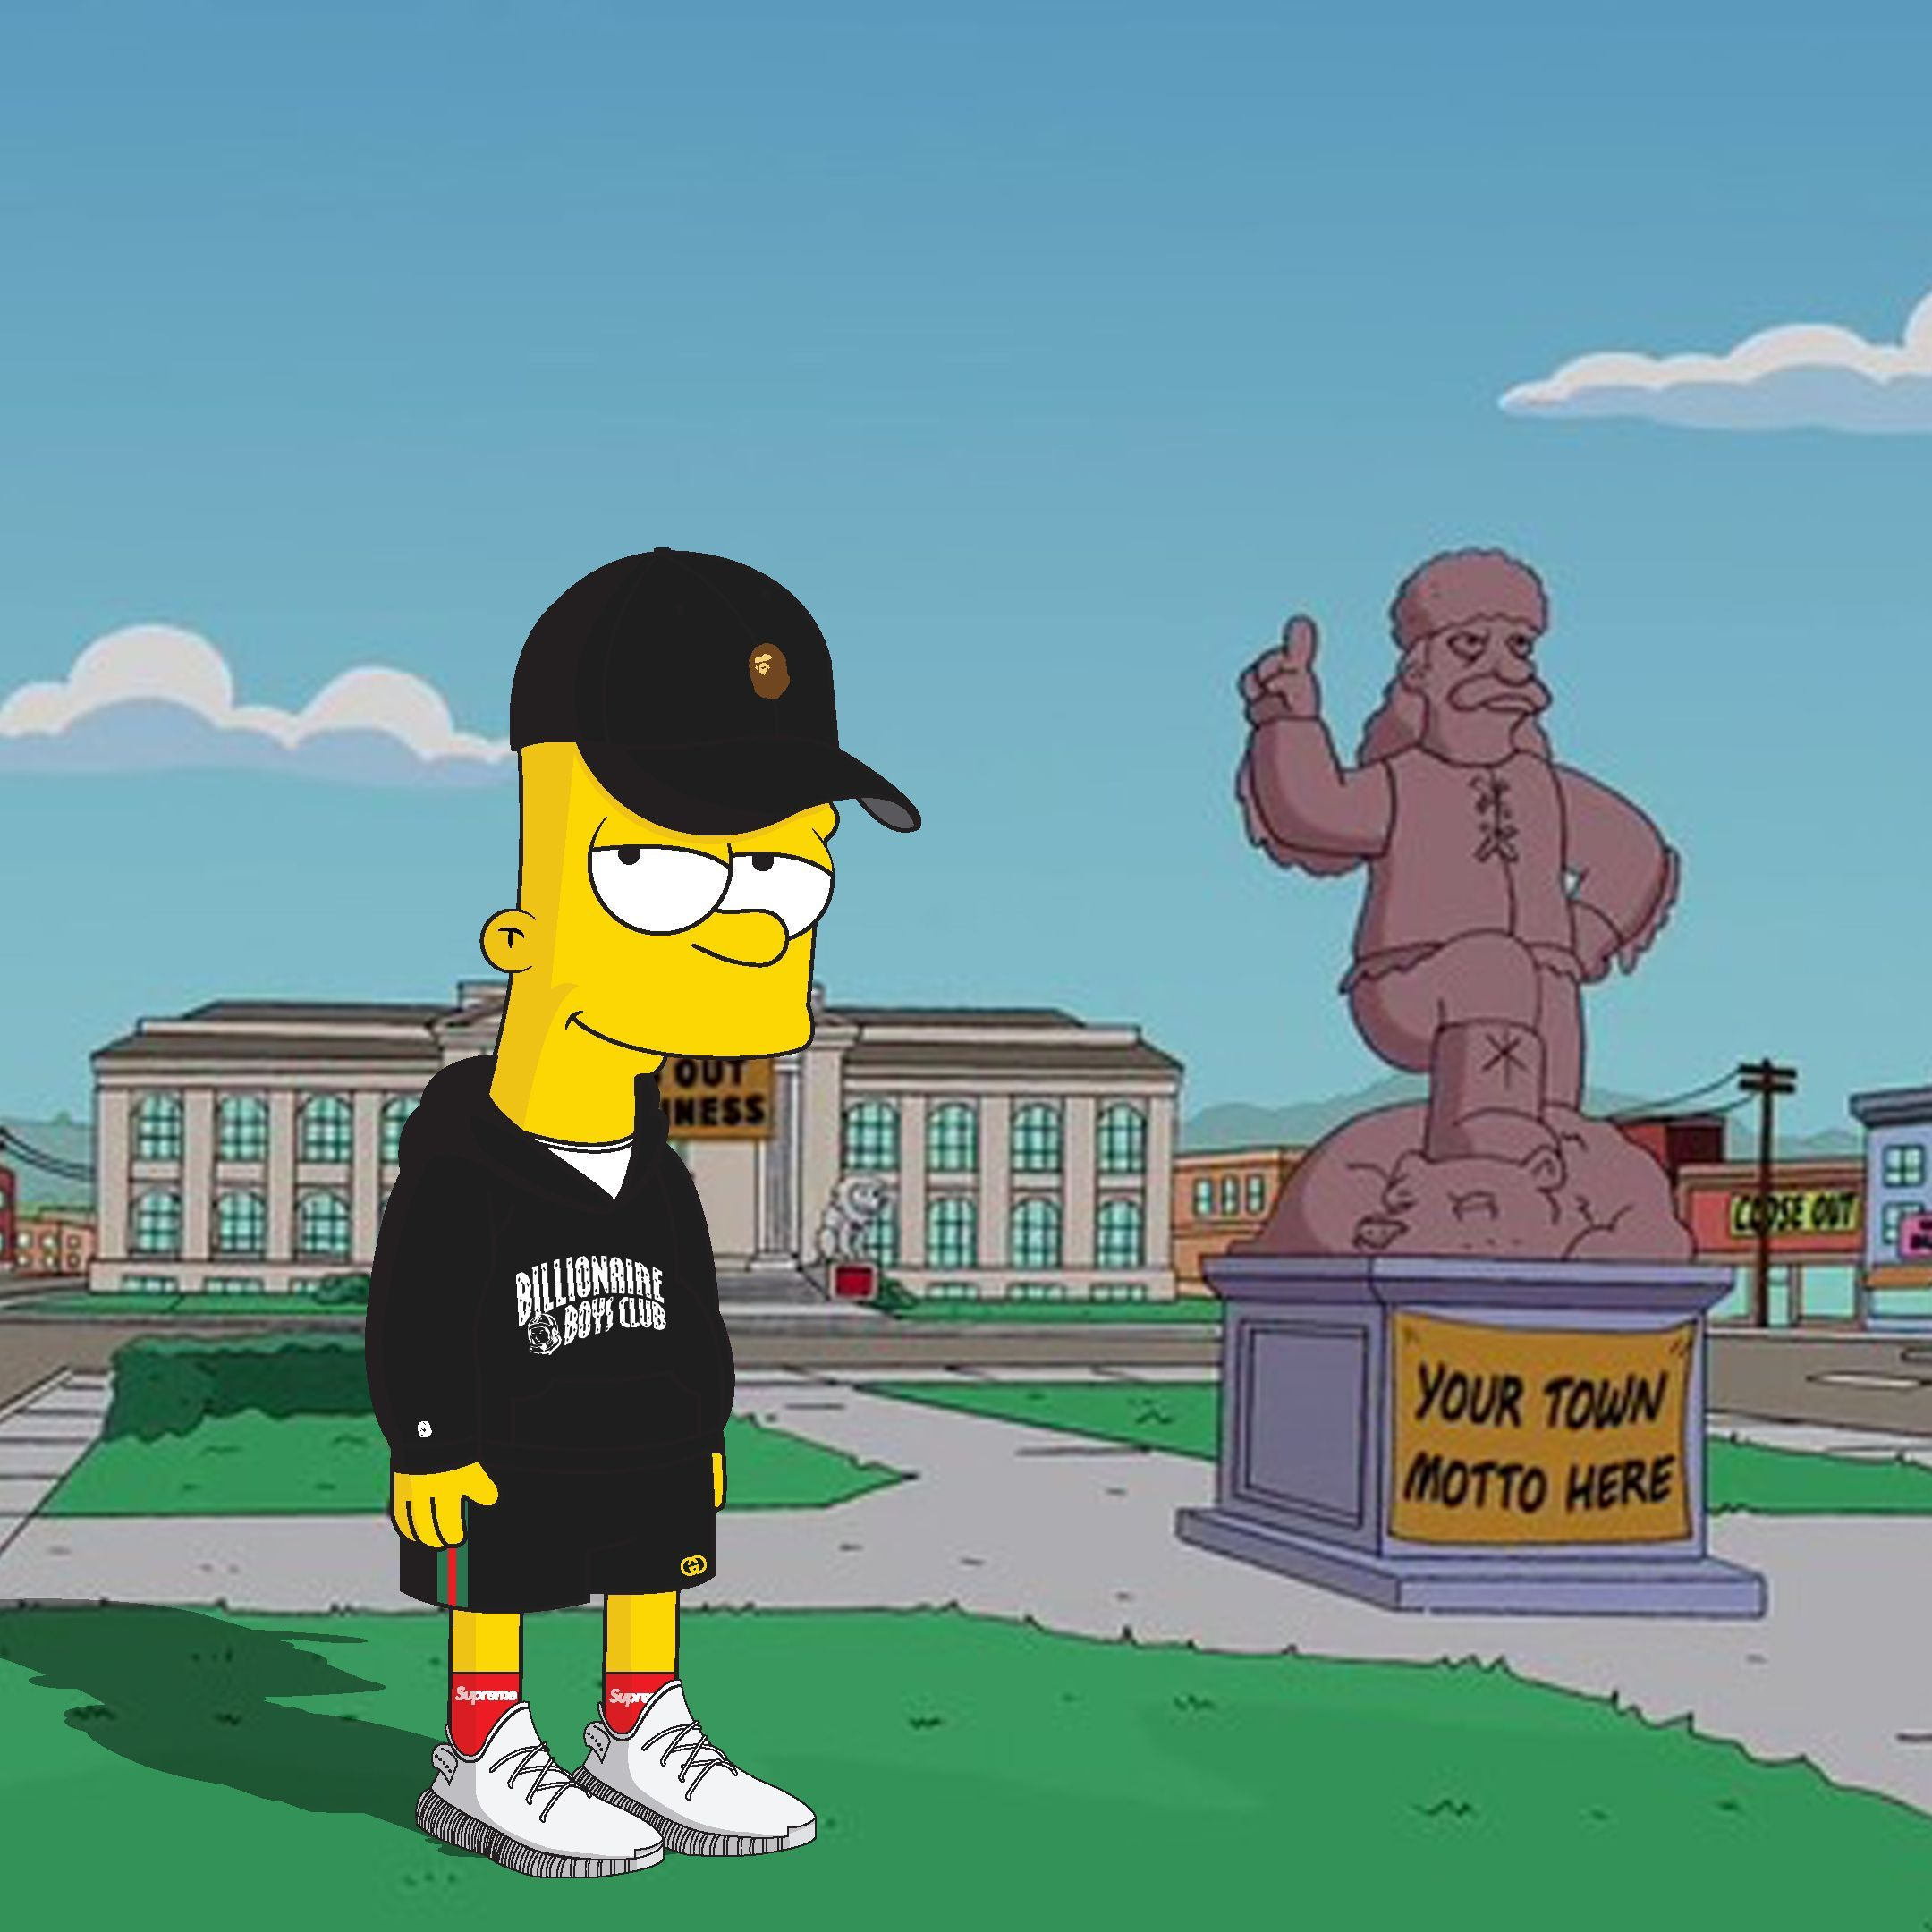 Hypebeast Bart Simpson Wallpapers   Top Hypebeast Bart 2160x2160